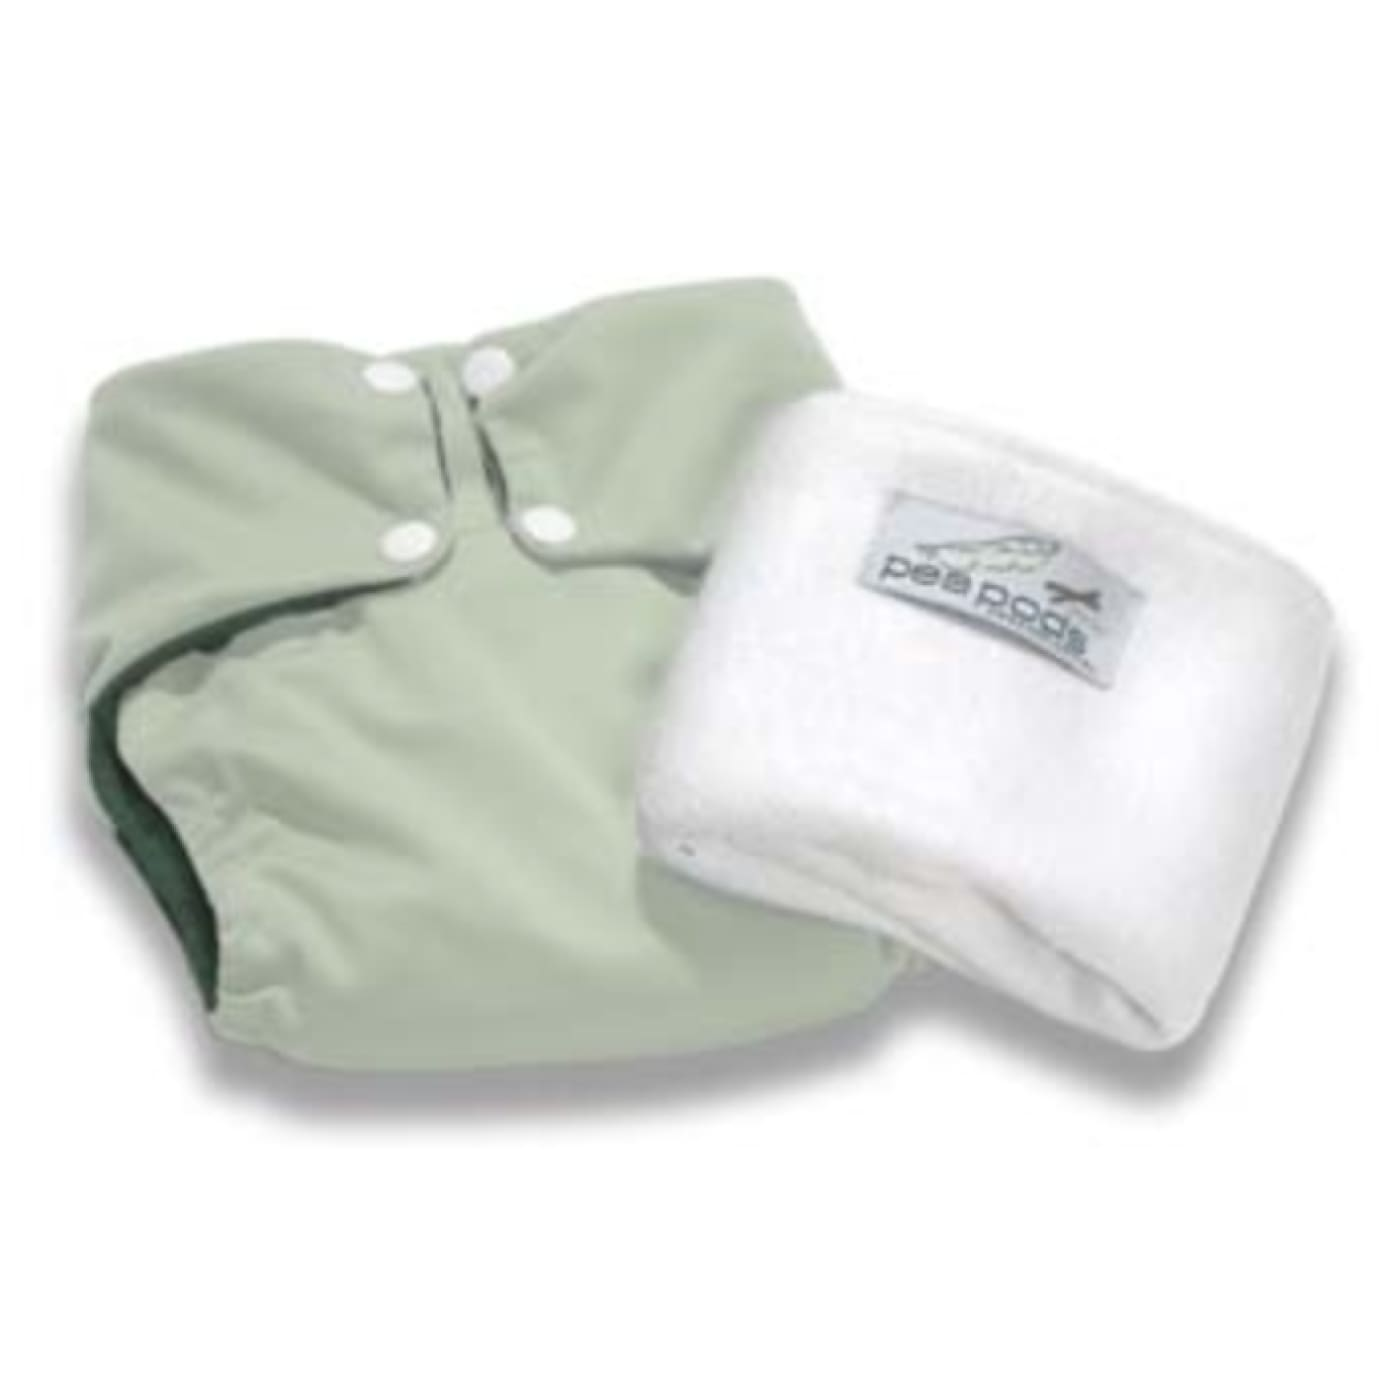 Pea Pods One Size Fits All Nappy - Pastel Green - BATHTIME & CHANGING - NAPPIES/WIPES/ACC ECO RANGE